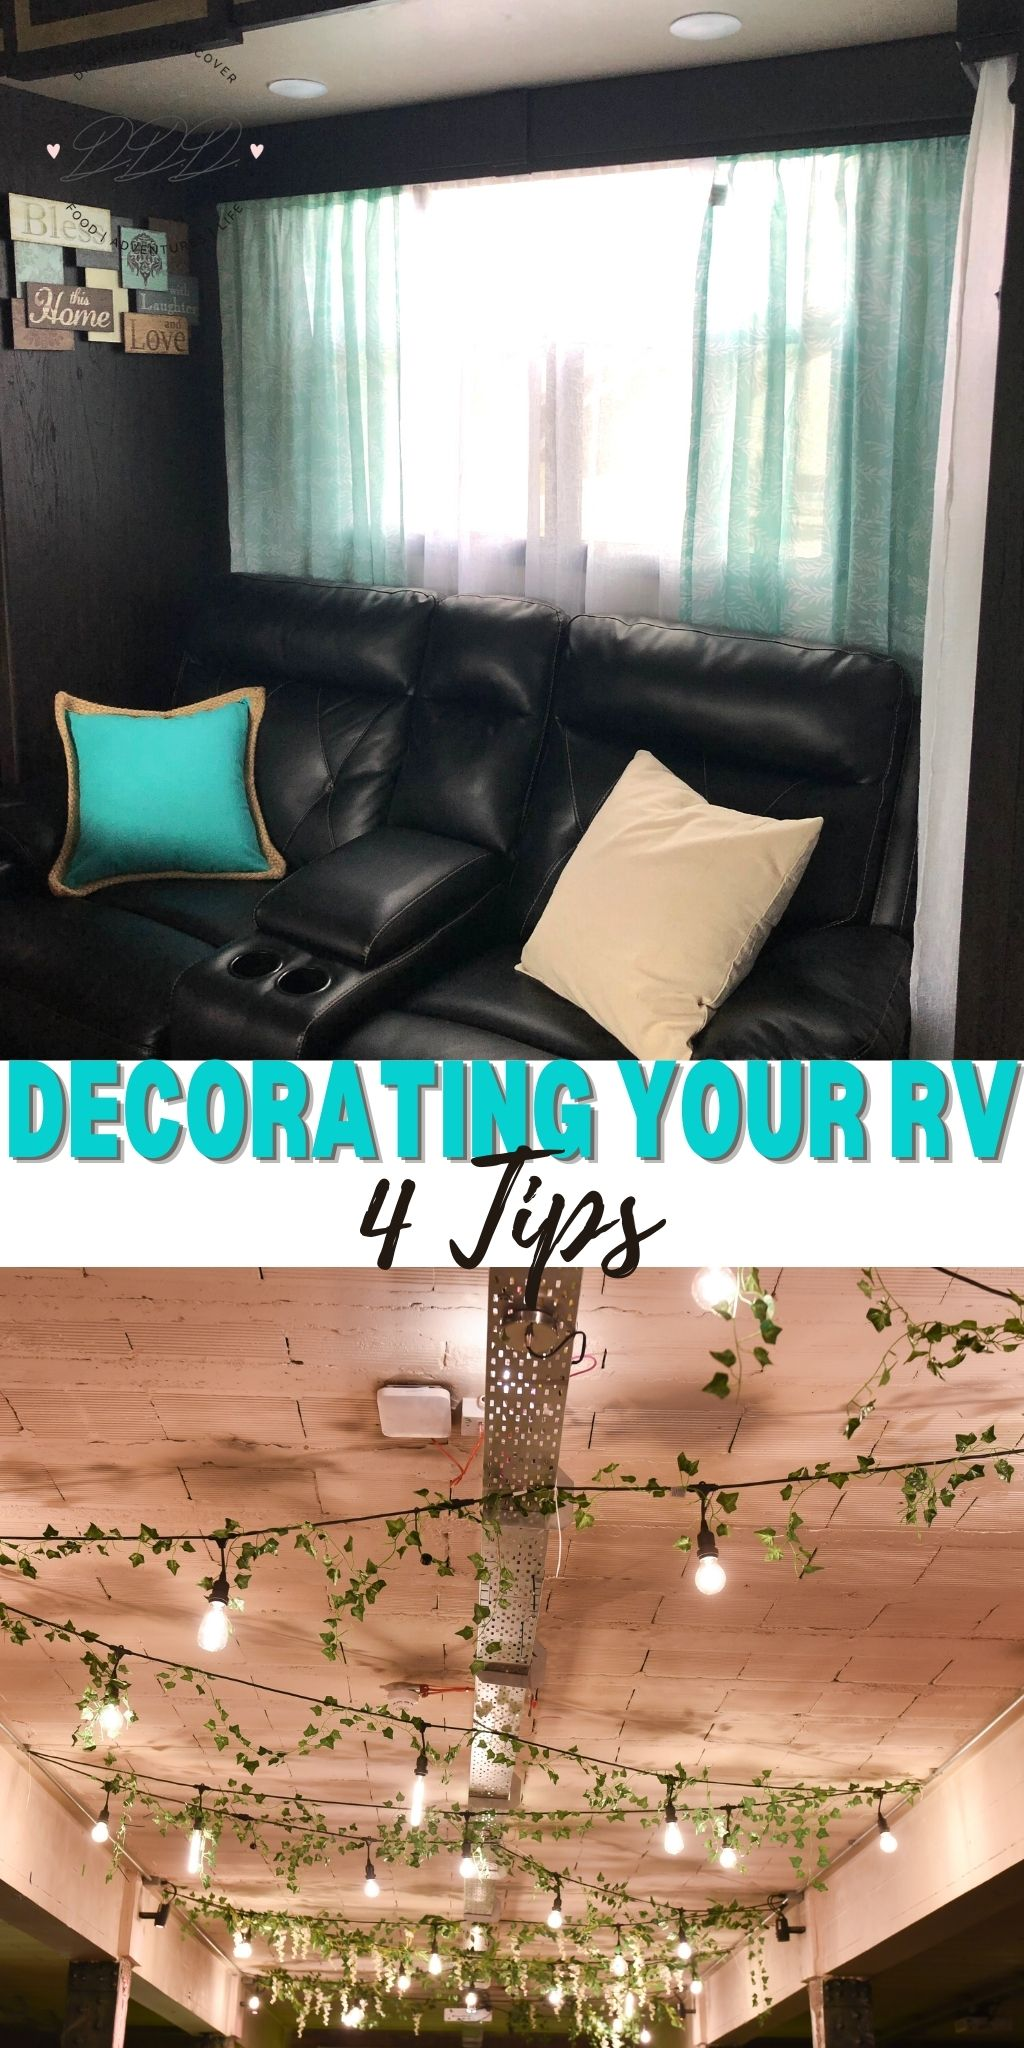 Decorating Your RV